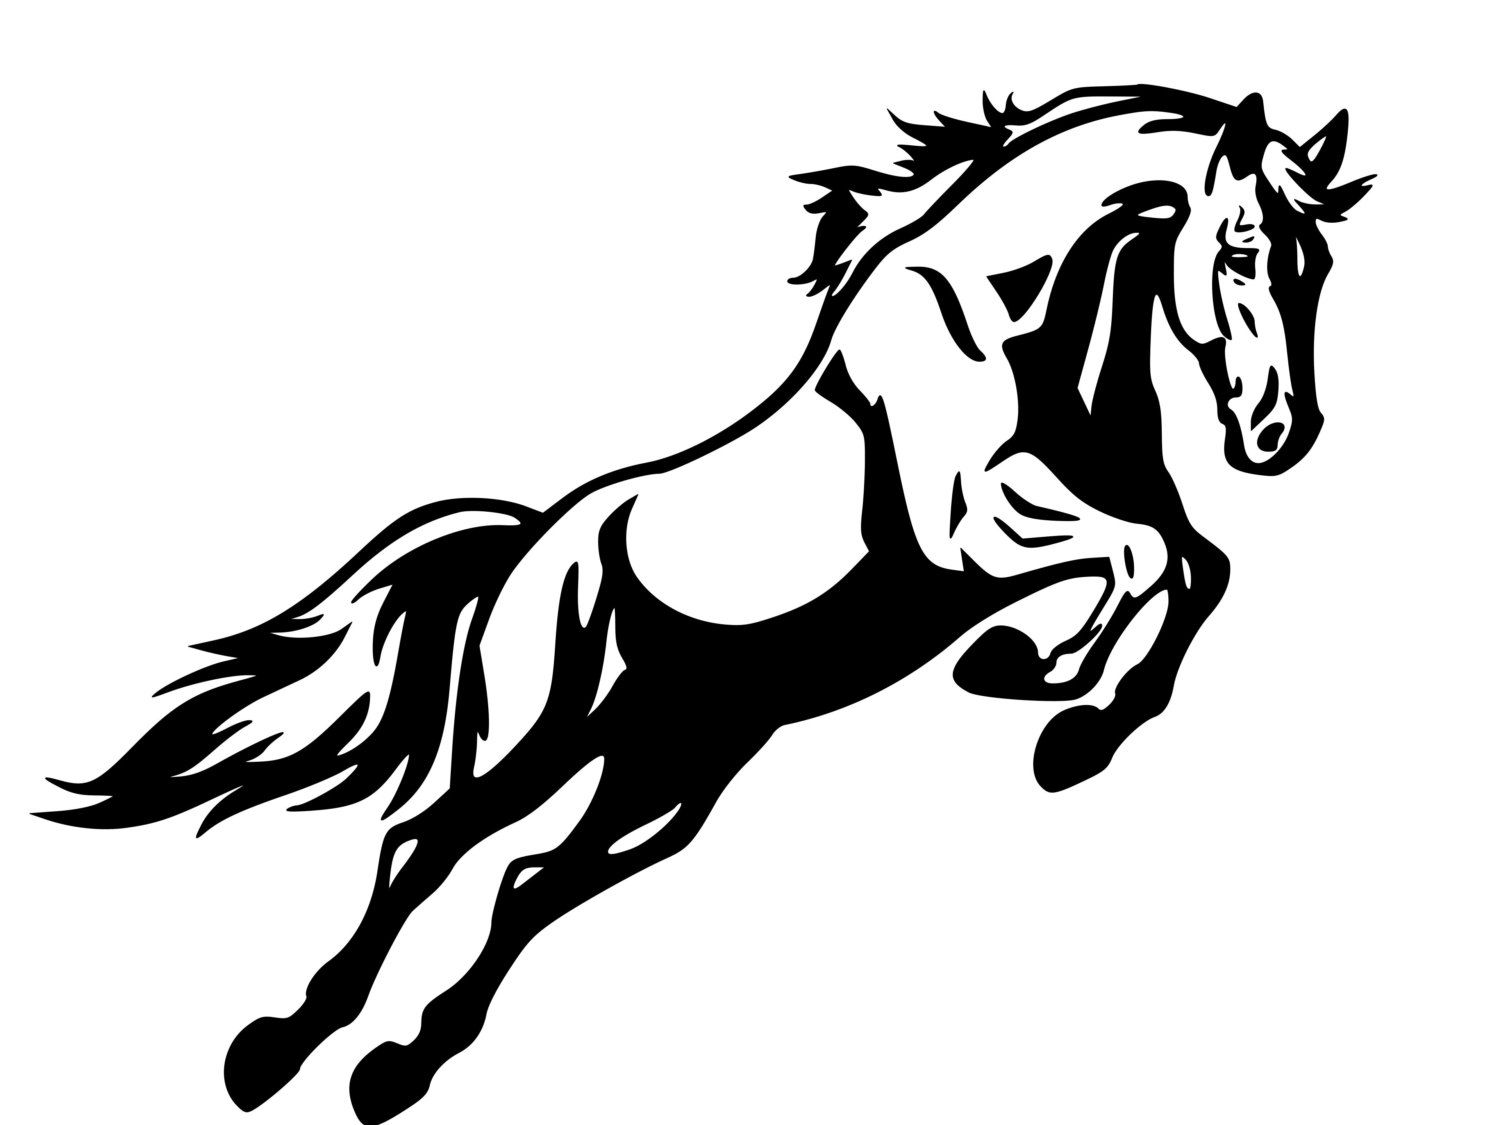 horse clipart silhouette google search pic to see horse head clipart black and white horse head images clipart